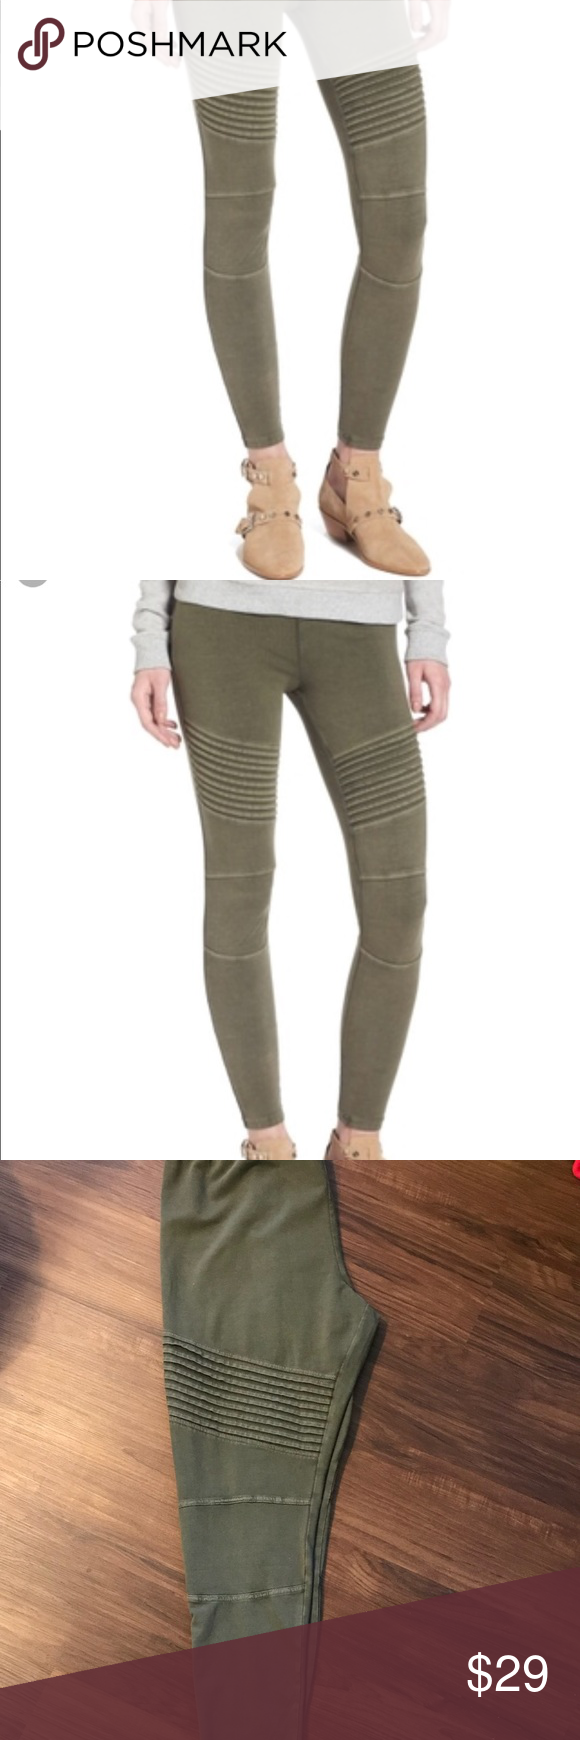 993d9ad96ec BP PLUS SIZE Moto Legging in Green NWT Perfect condition. NWT. Soft  comfortable and stylish! Size is XXL which according to size chart from  Nordstrom is ...